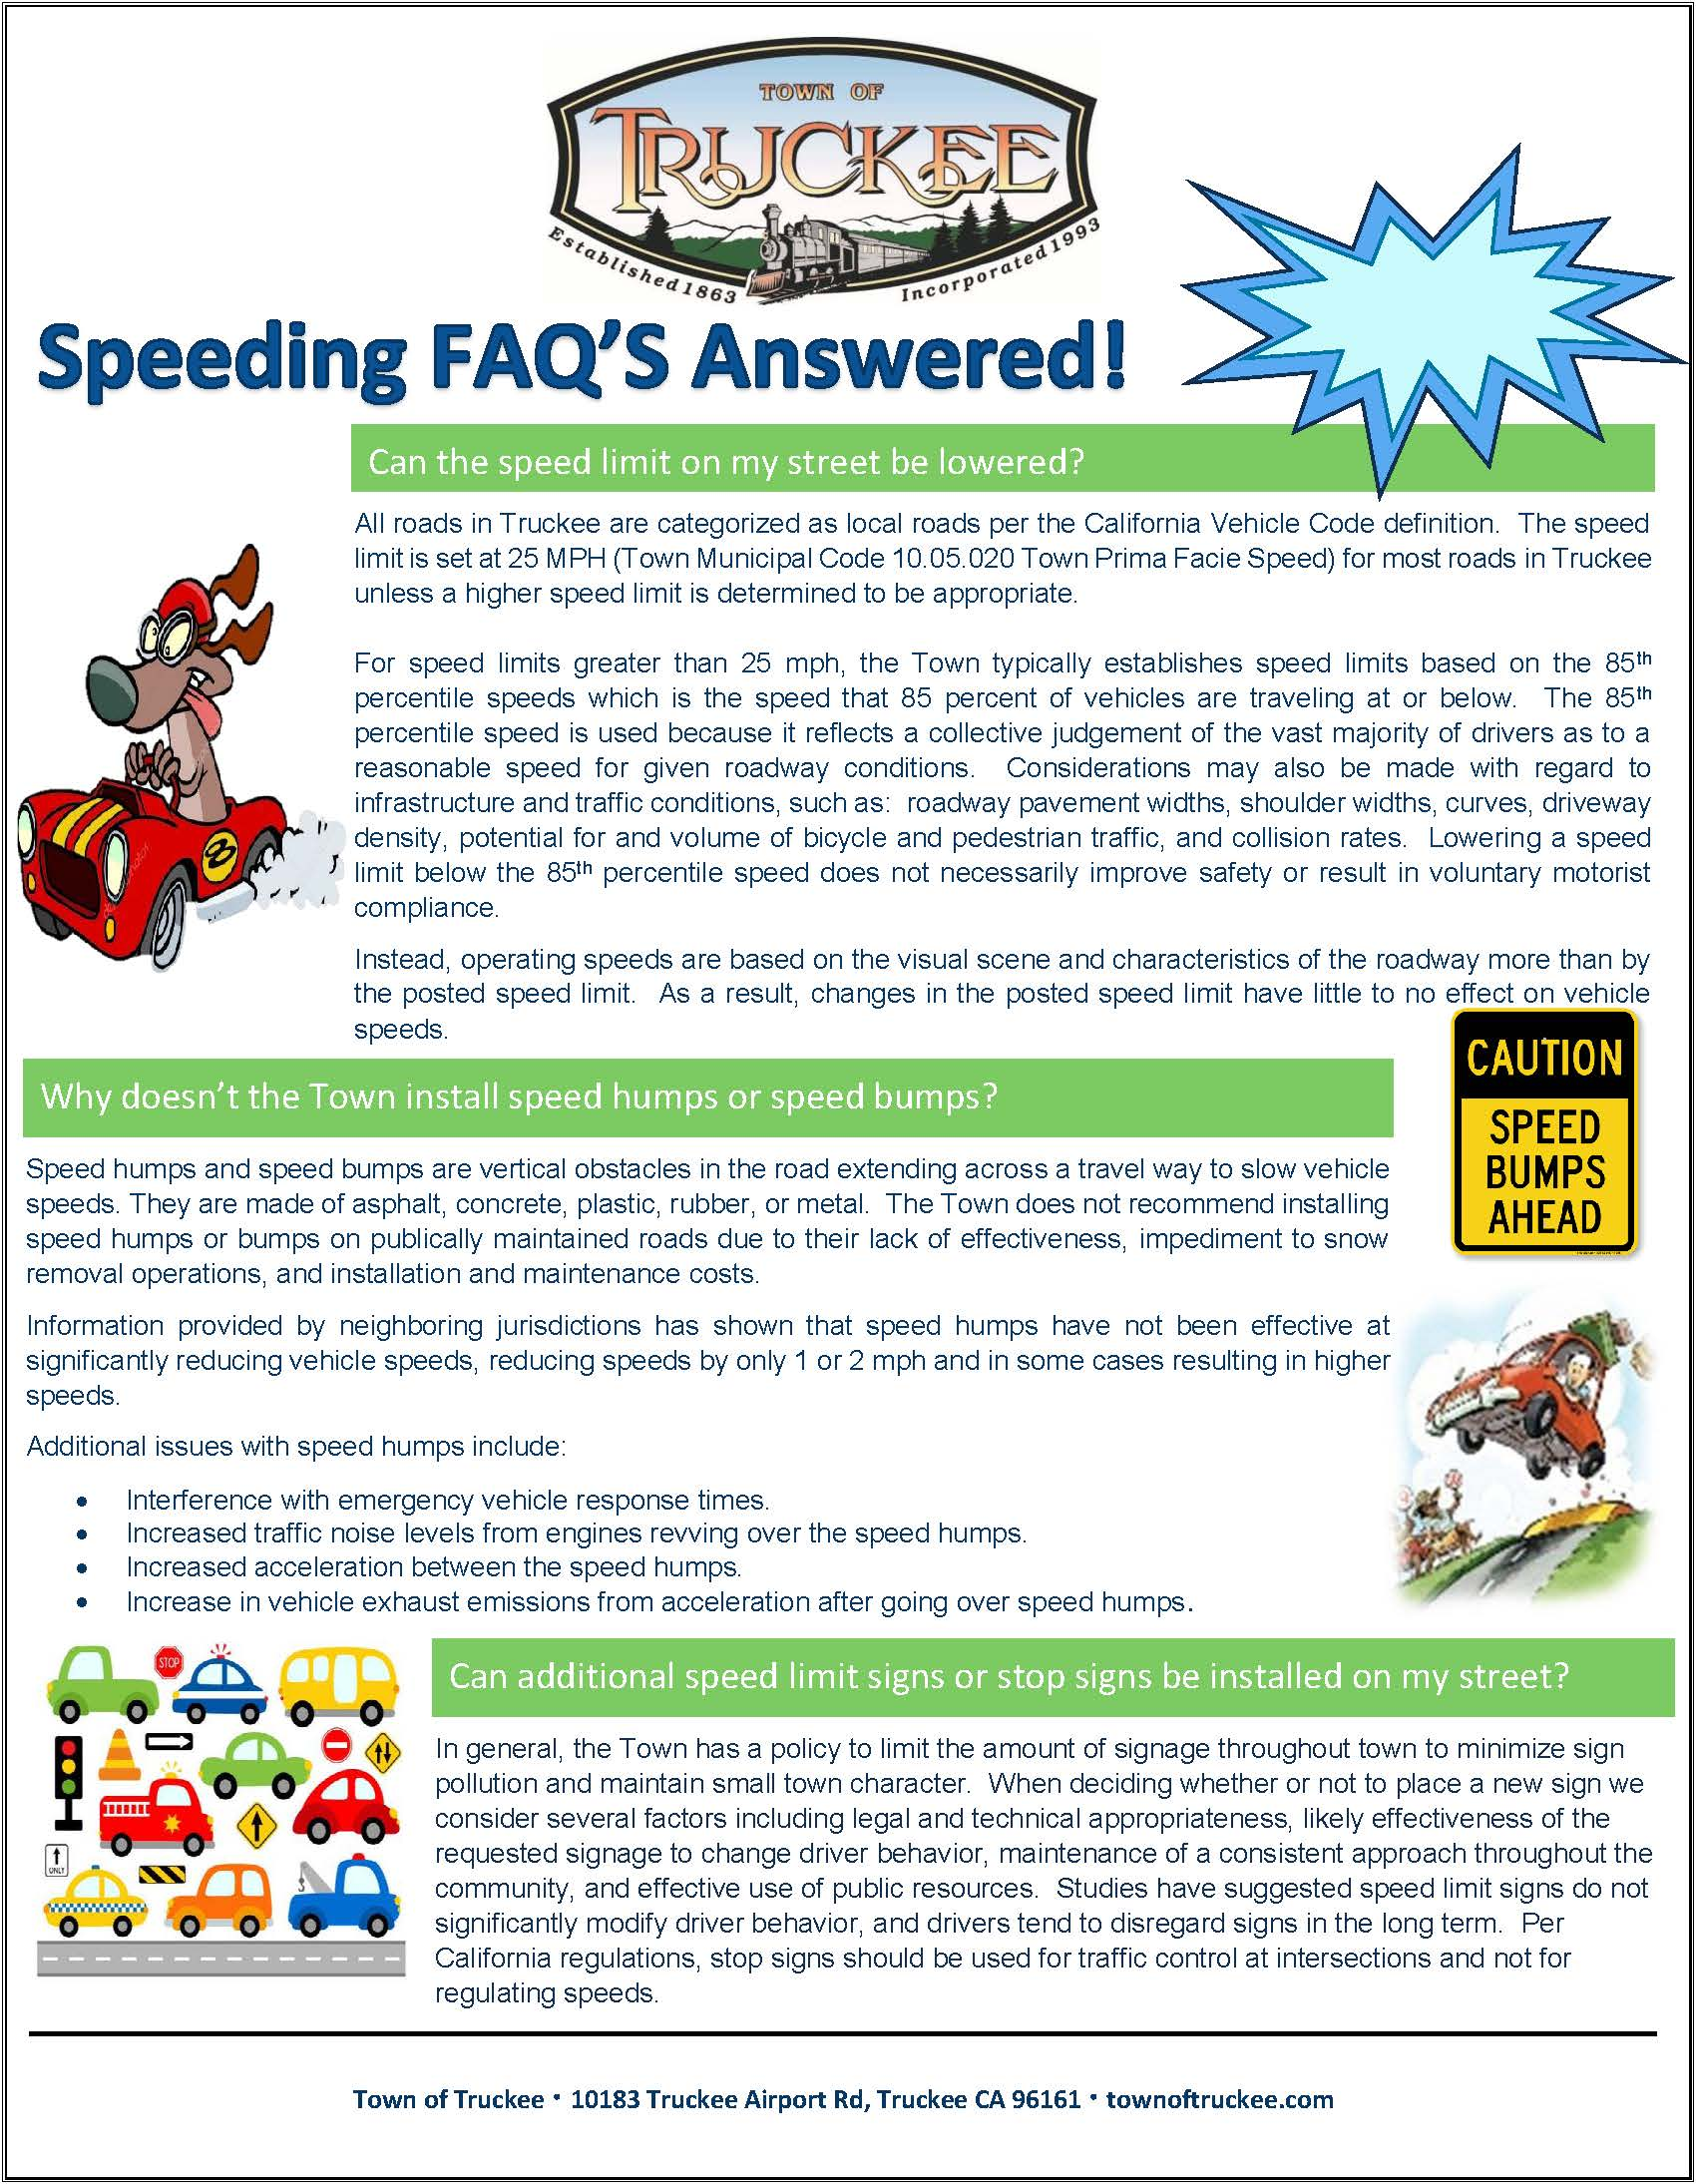 Speeding FAQ's Answered - Flyer